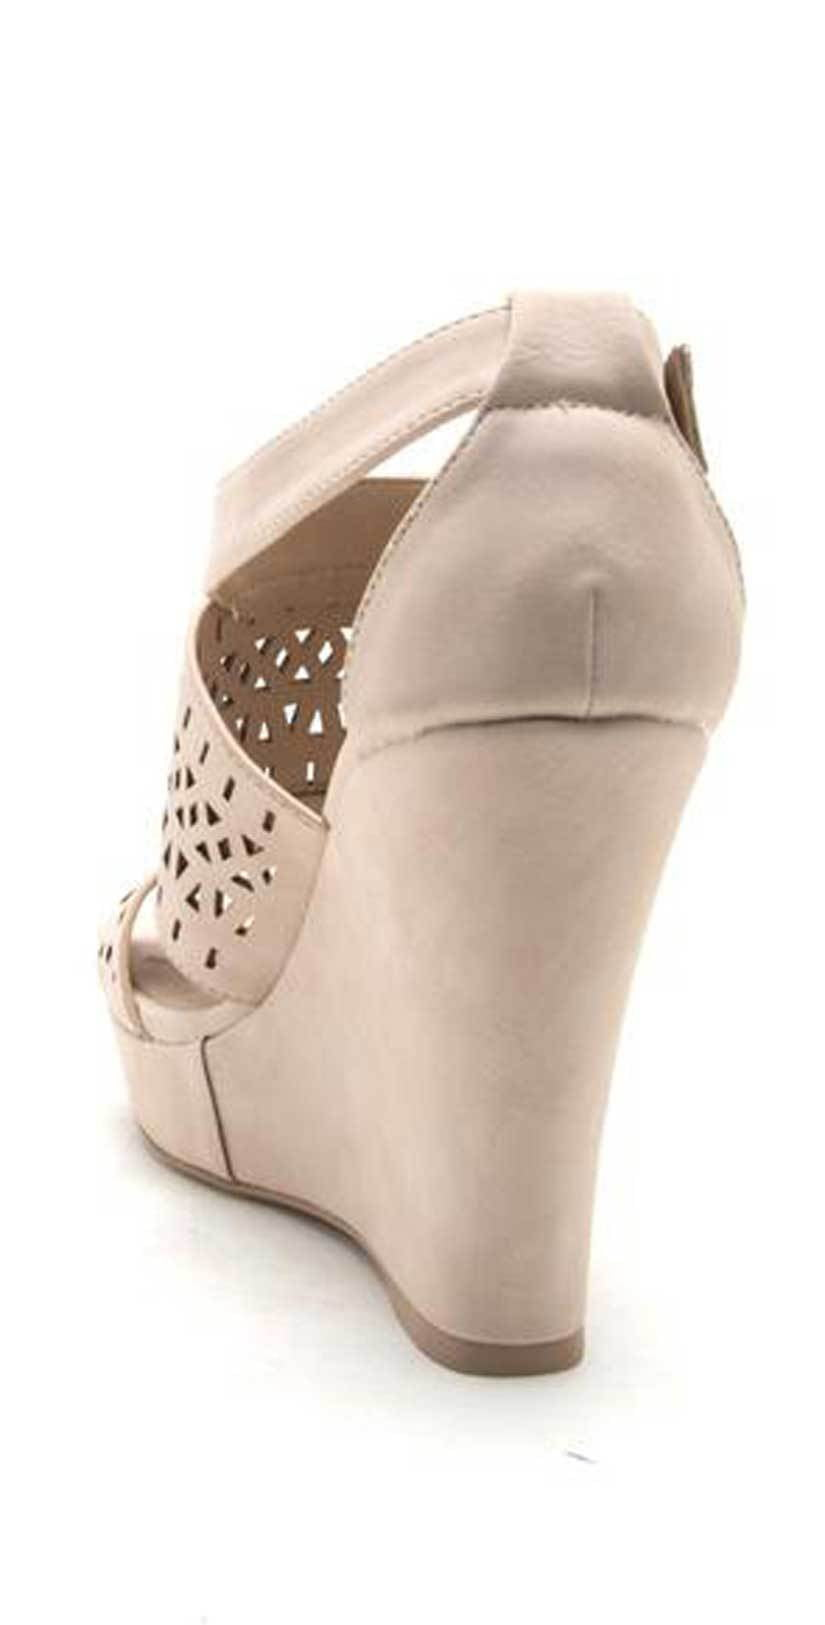 Qupid Shoes Lena Perforated Strappy Wedge in Nude LENA-619 NUDE: